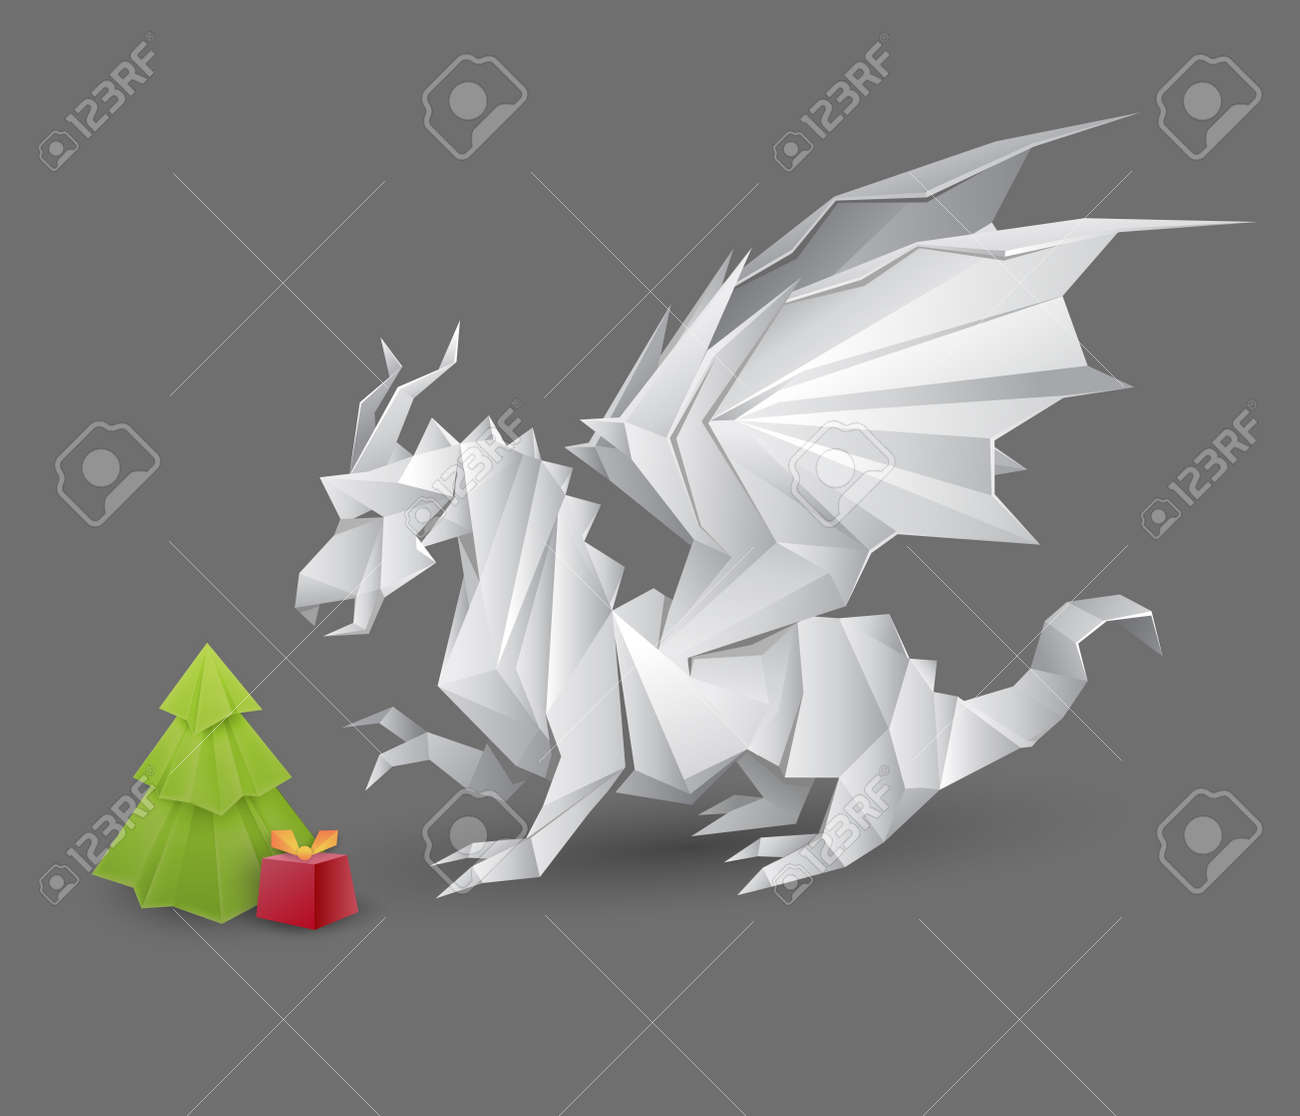 Origami Dragon And A Christmas Tree With Present